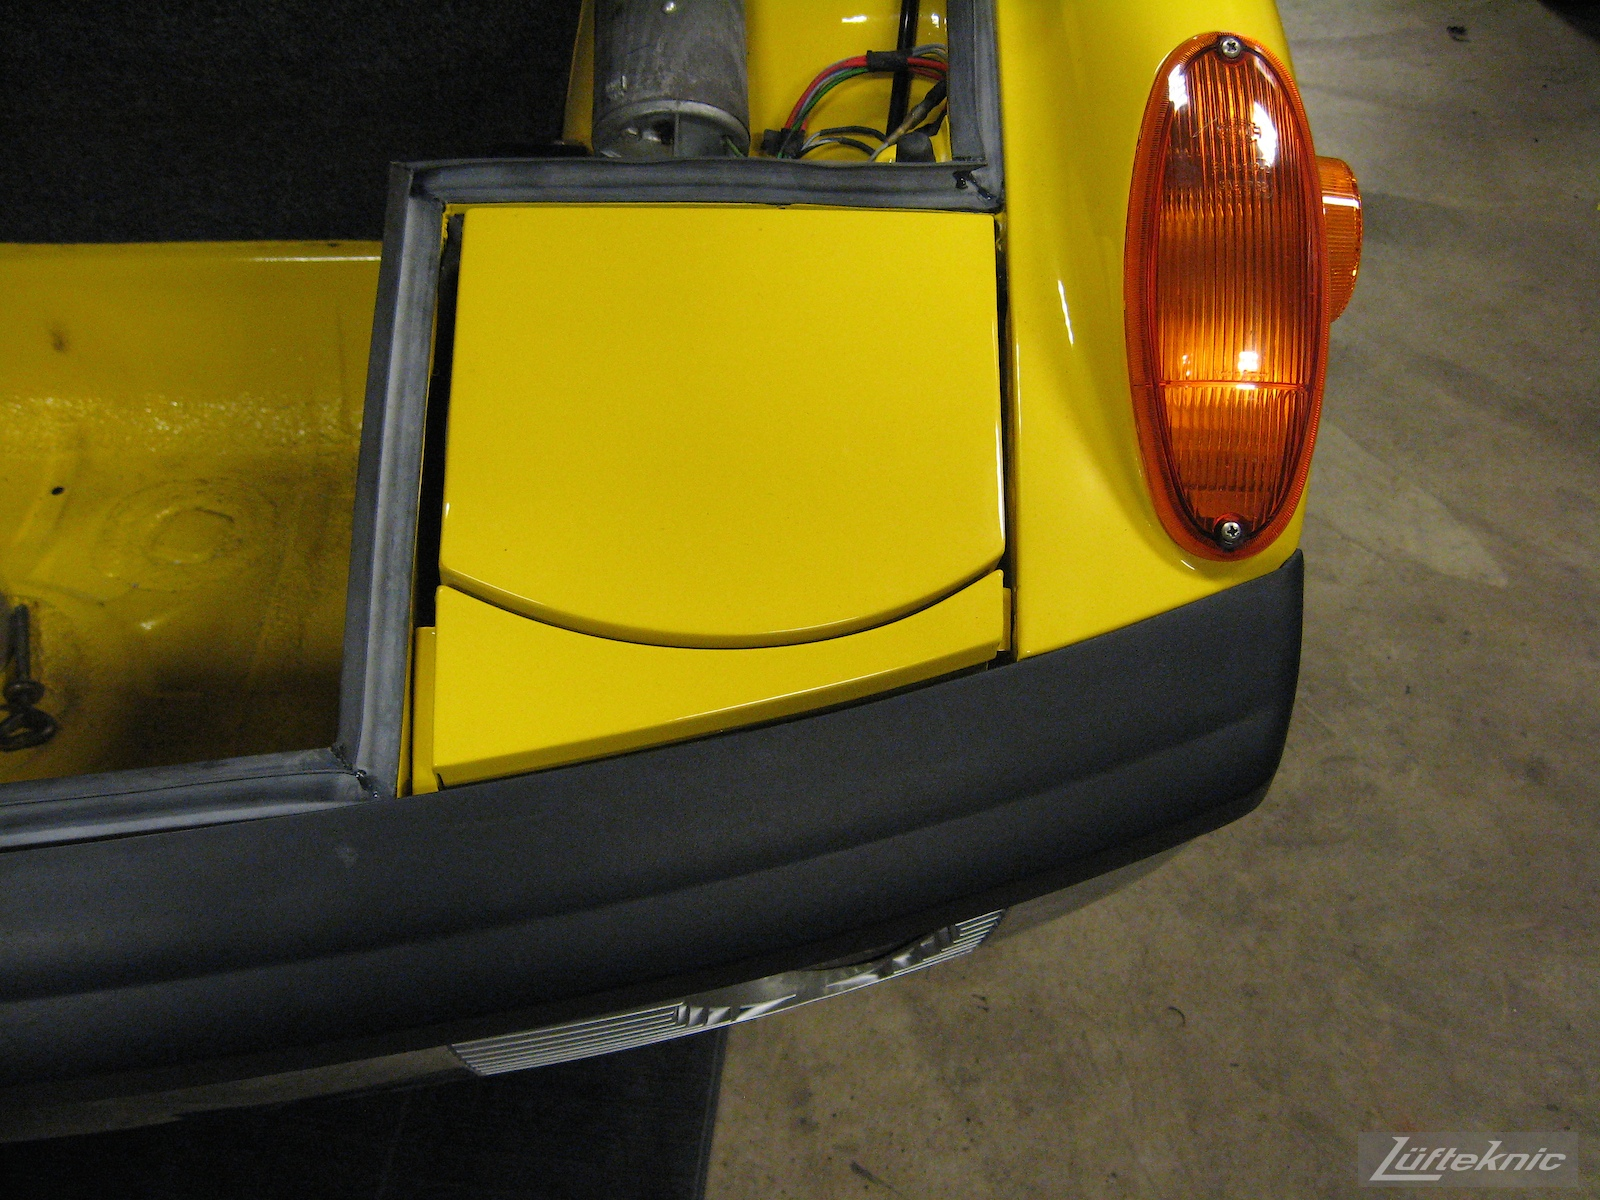 Front bumper and lighting details on a restored yellow Porsche 914 at Lufteknic.